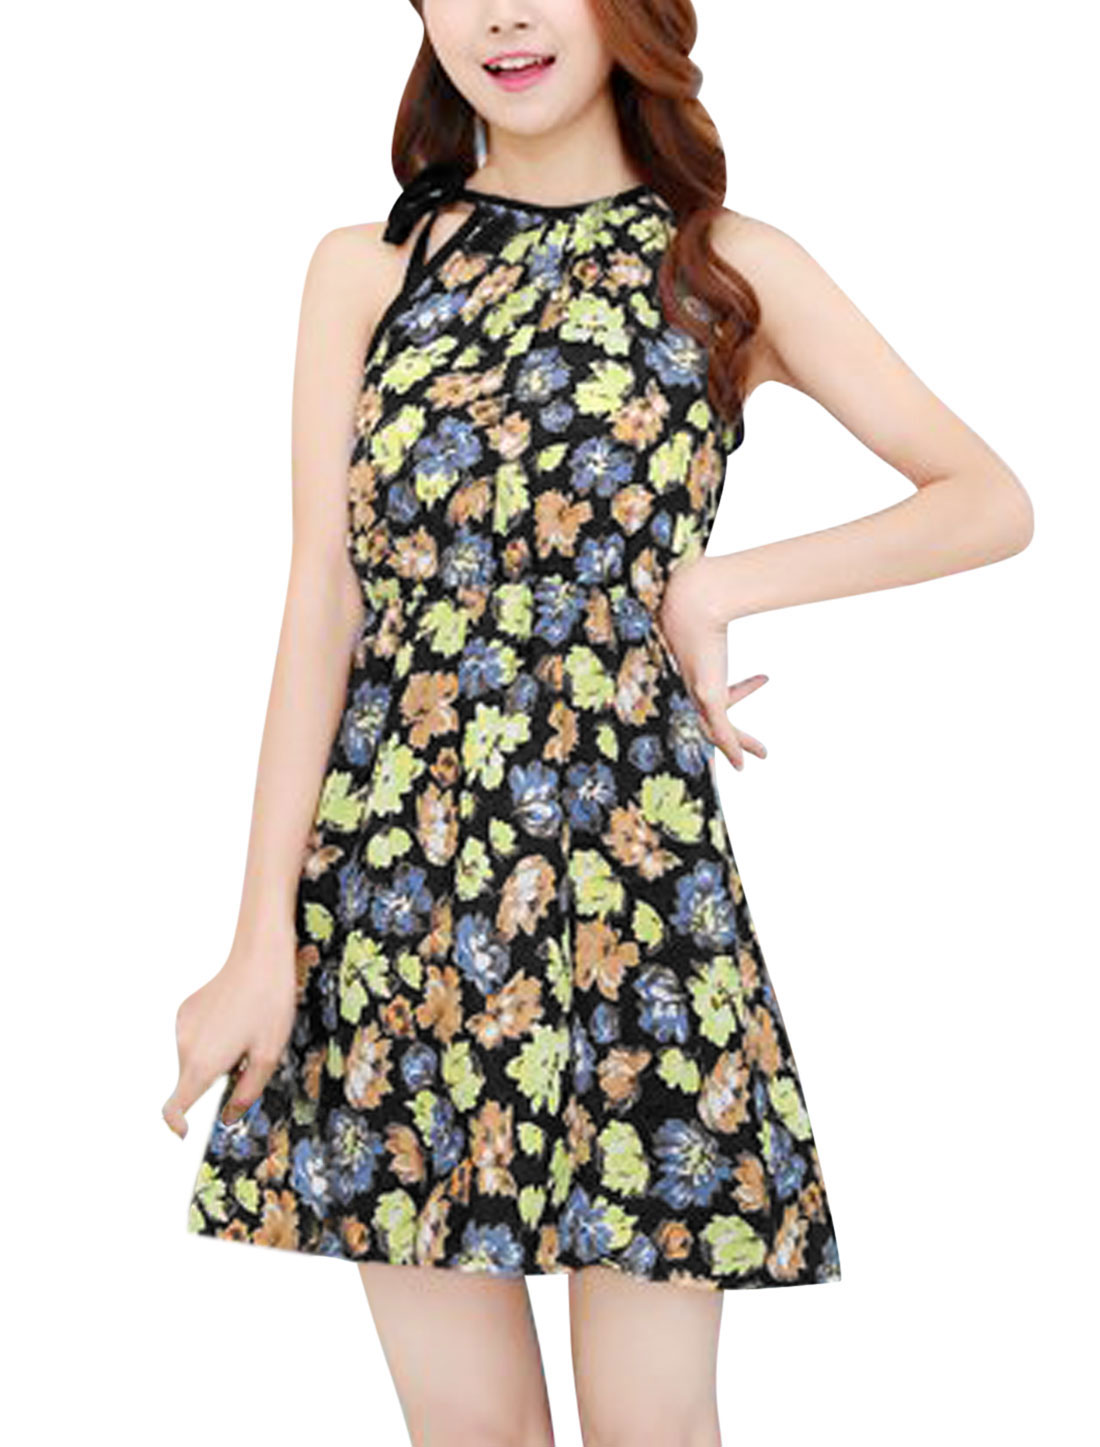 Women Cut Out Back Halter Neck Flower Pattern Casual Dress Black Yellow XS